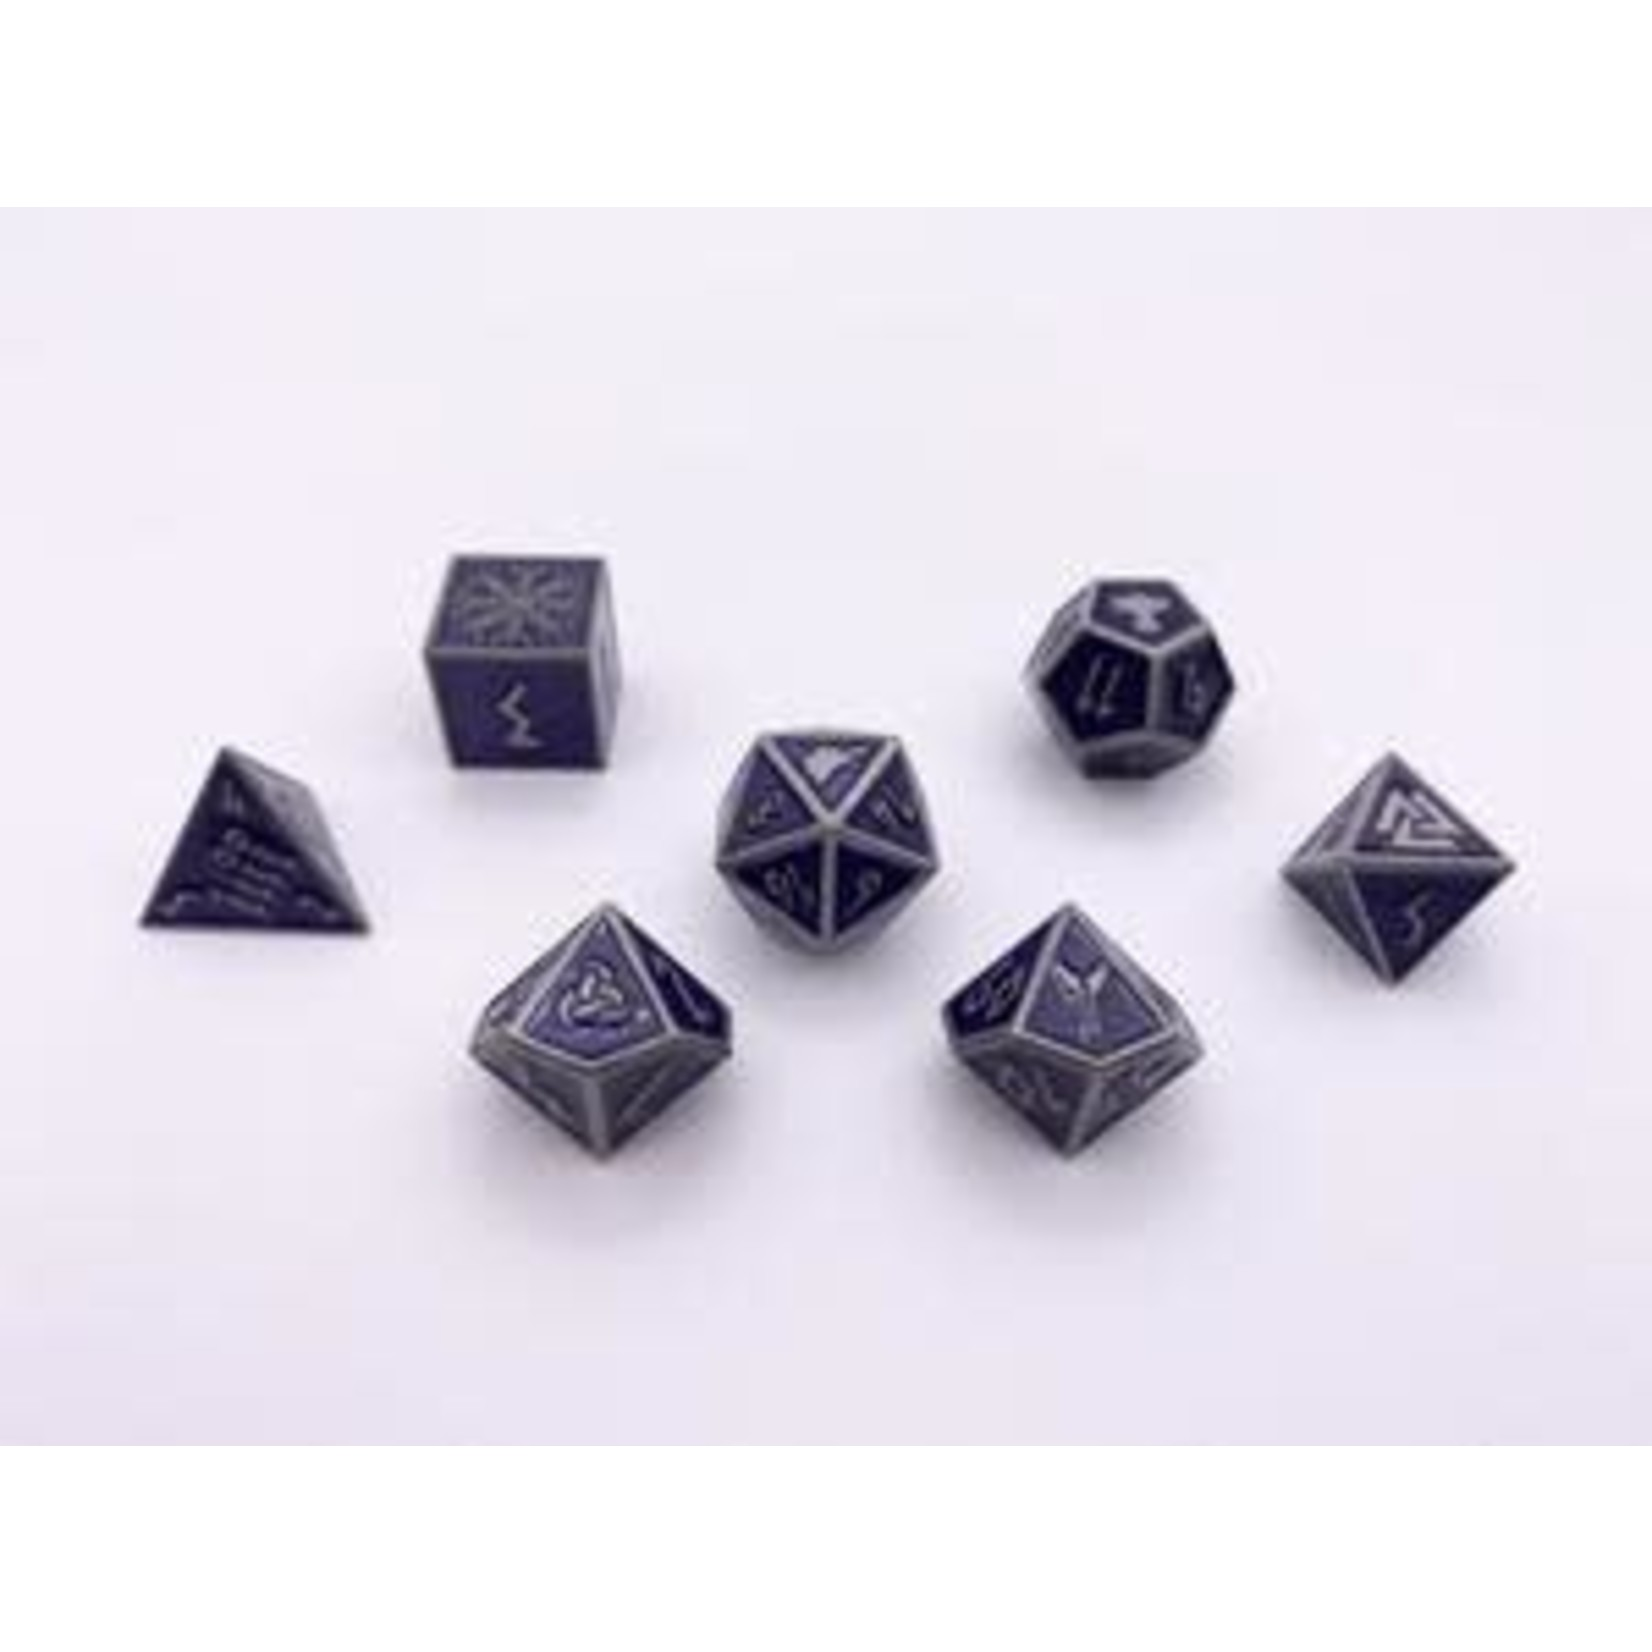 Norse Foundry Norse Foundry Dice: Enamel Norse Dice Set - Doppelganger